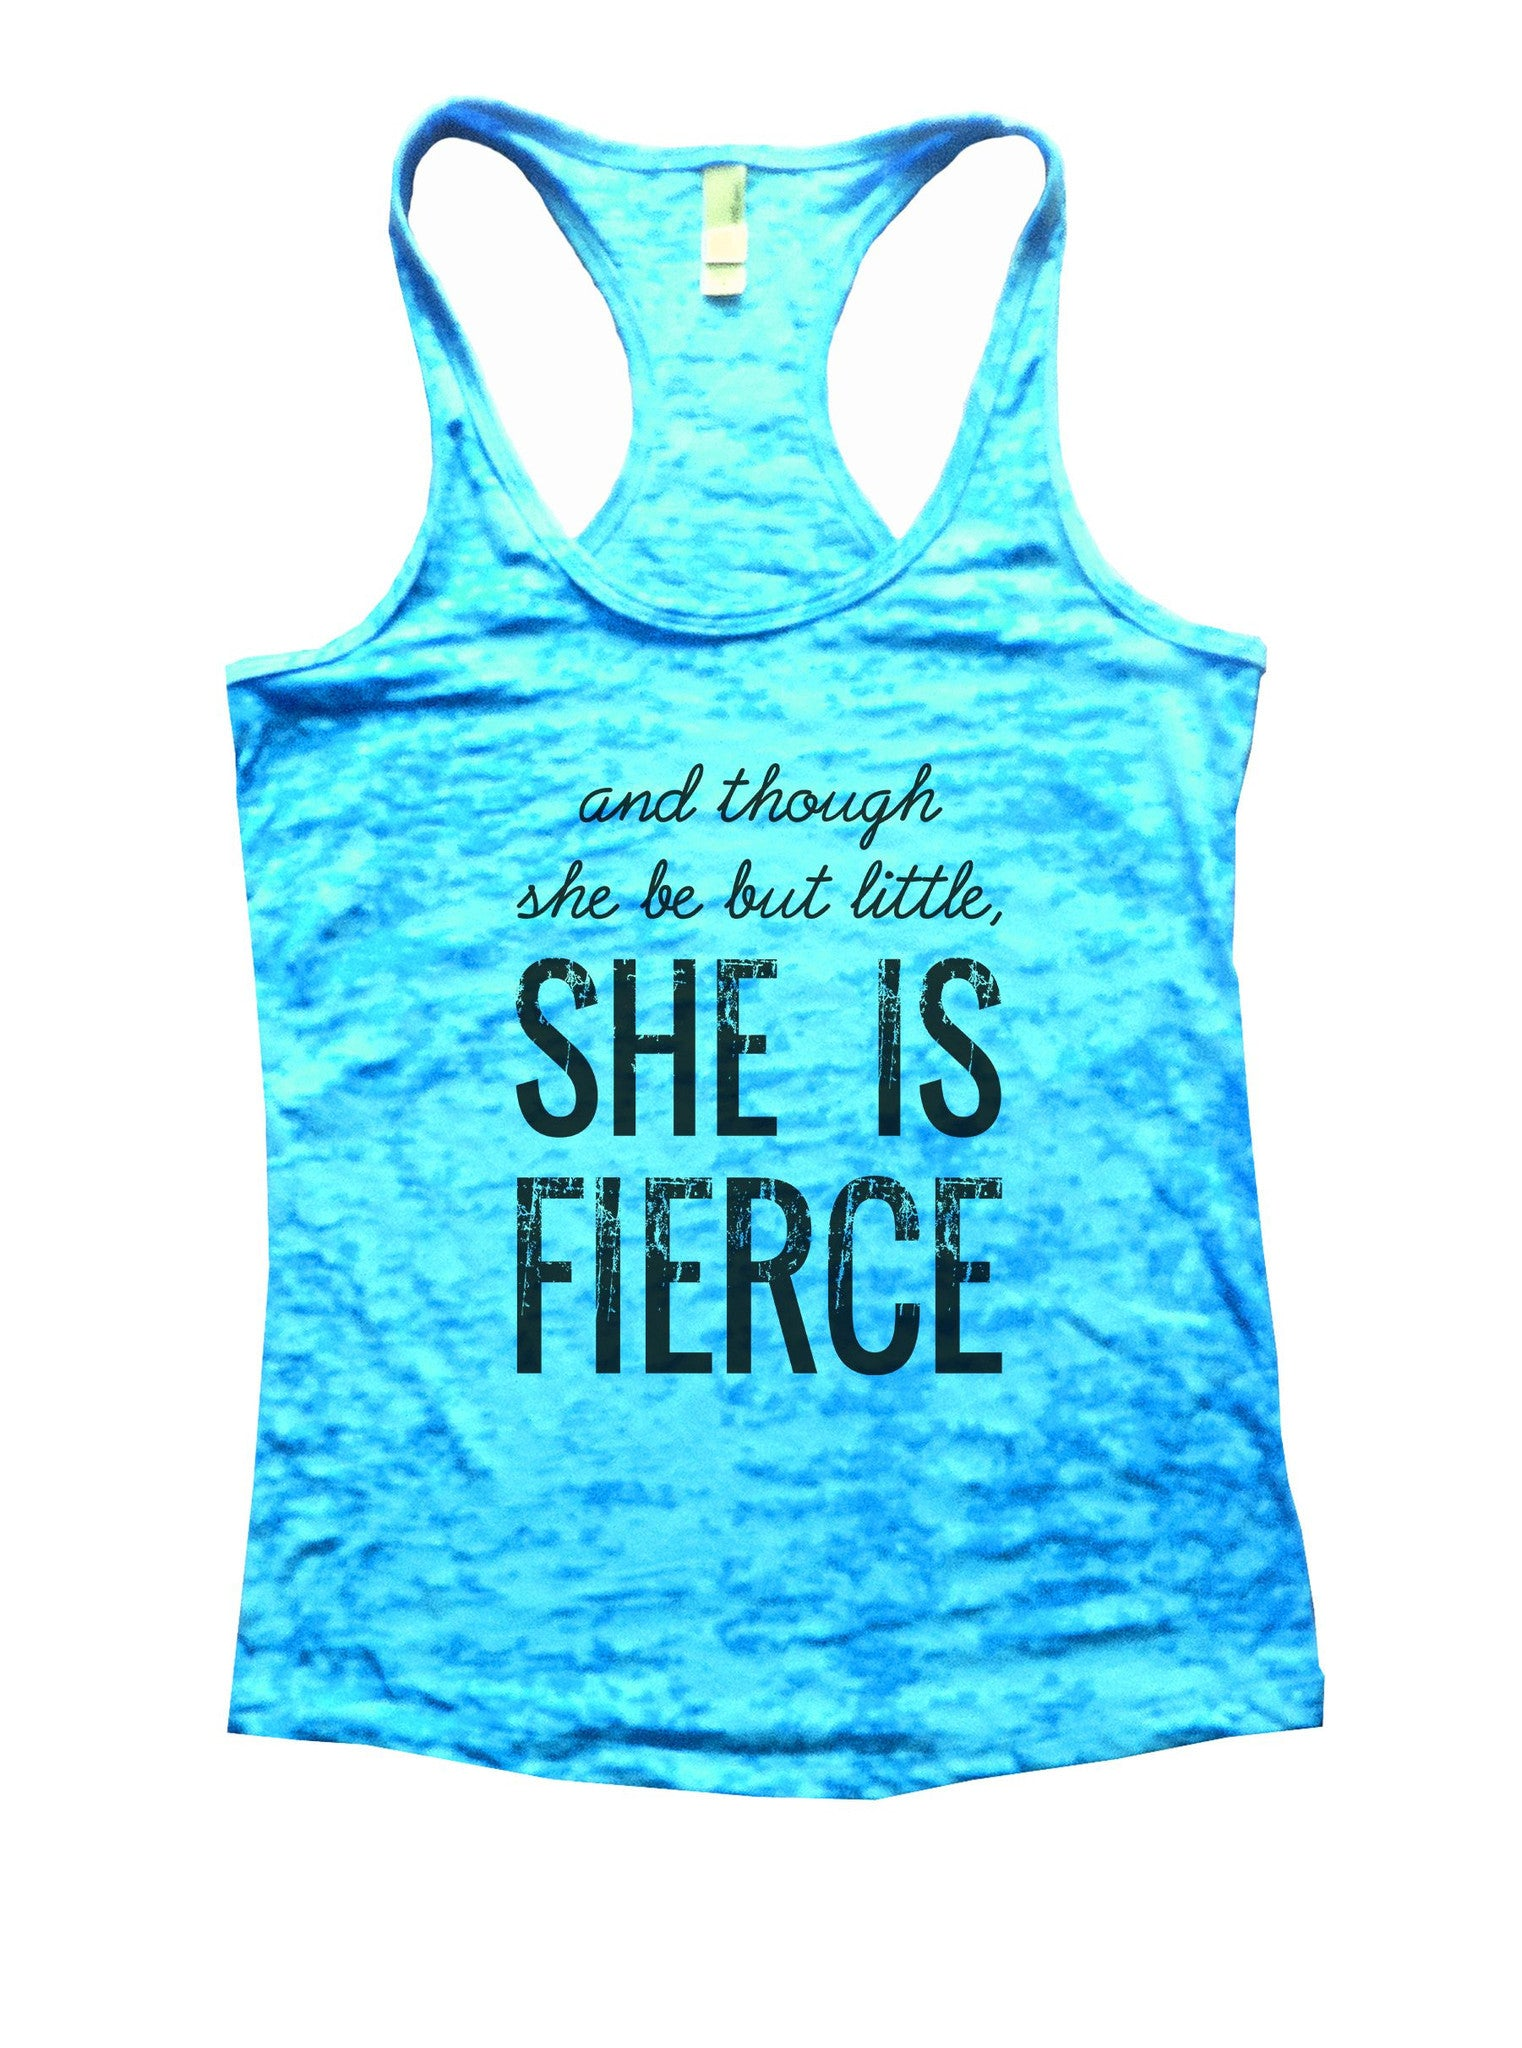 And Though She Be But Little, She Is Fierce Burnout Tank Top By BurnoutTankTops.com - 950 - Funny Shirts Tank Tops Burnouts and Triblends  - 4